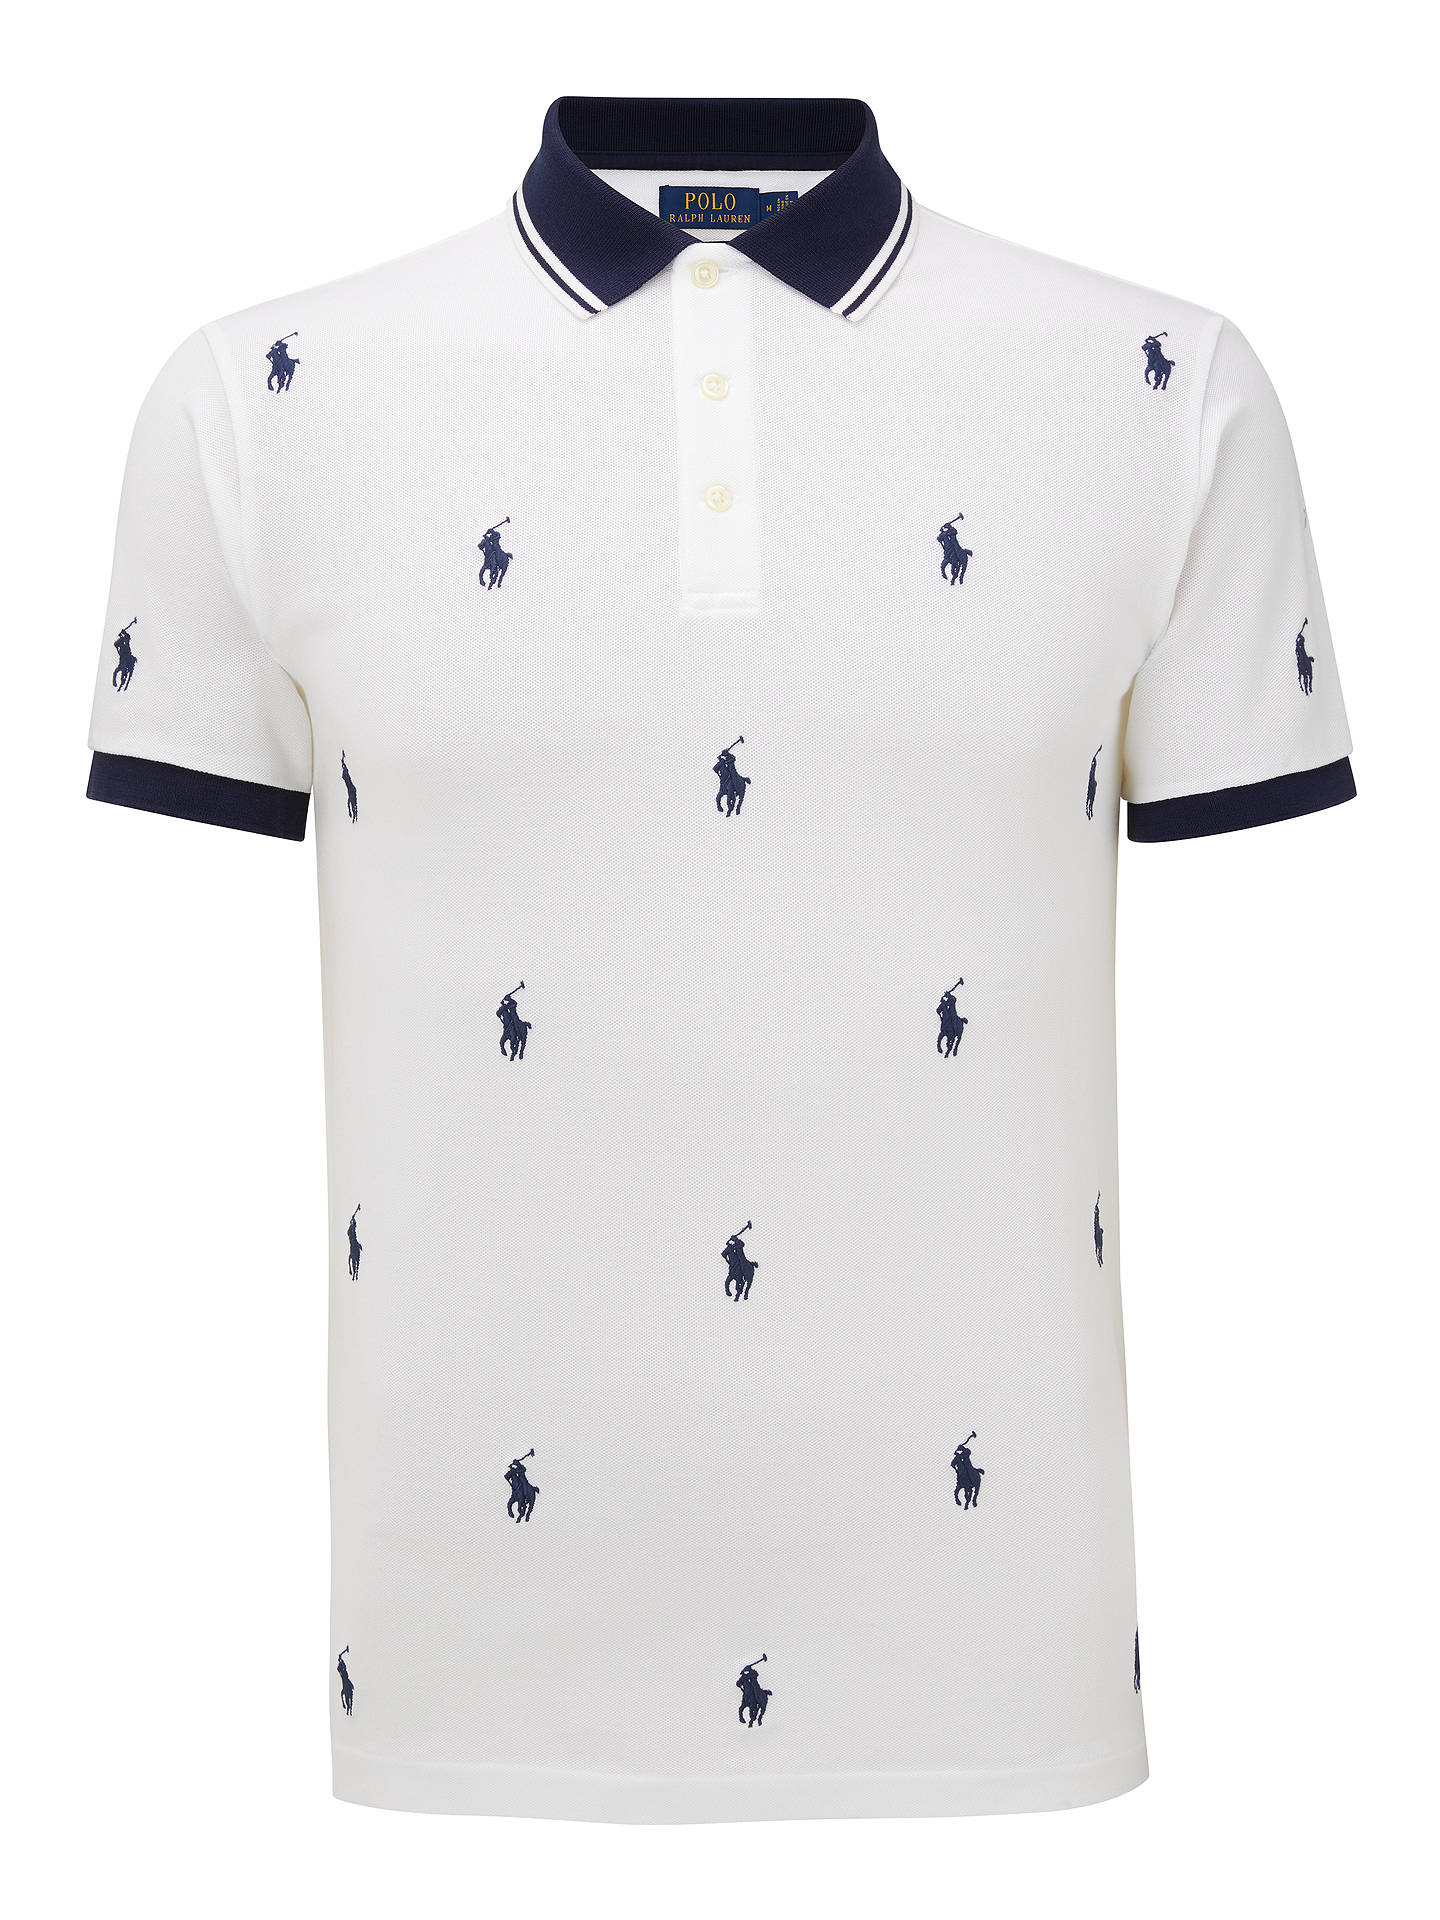 new arrival f2b22 9c8f6 Polo Ralph Lauren Pony Pattern Polo Shirt, White All-Over